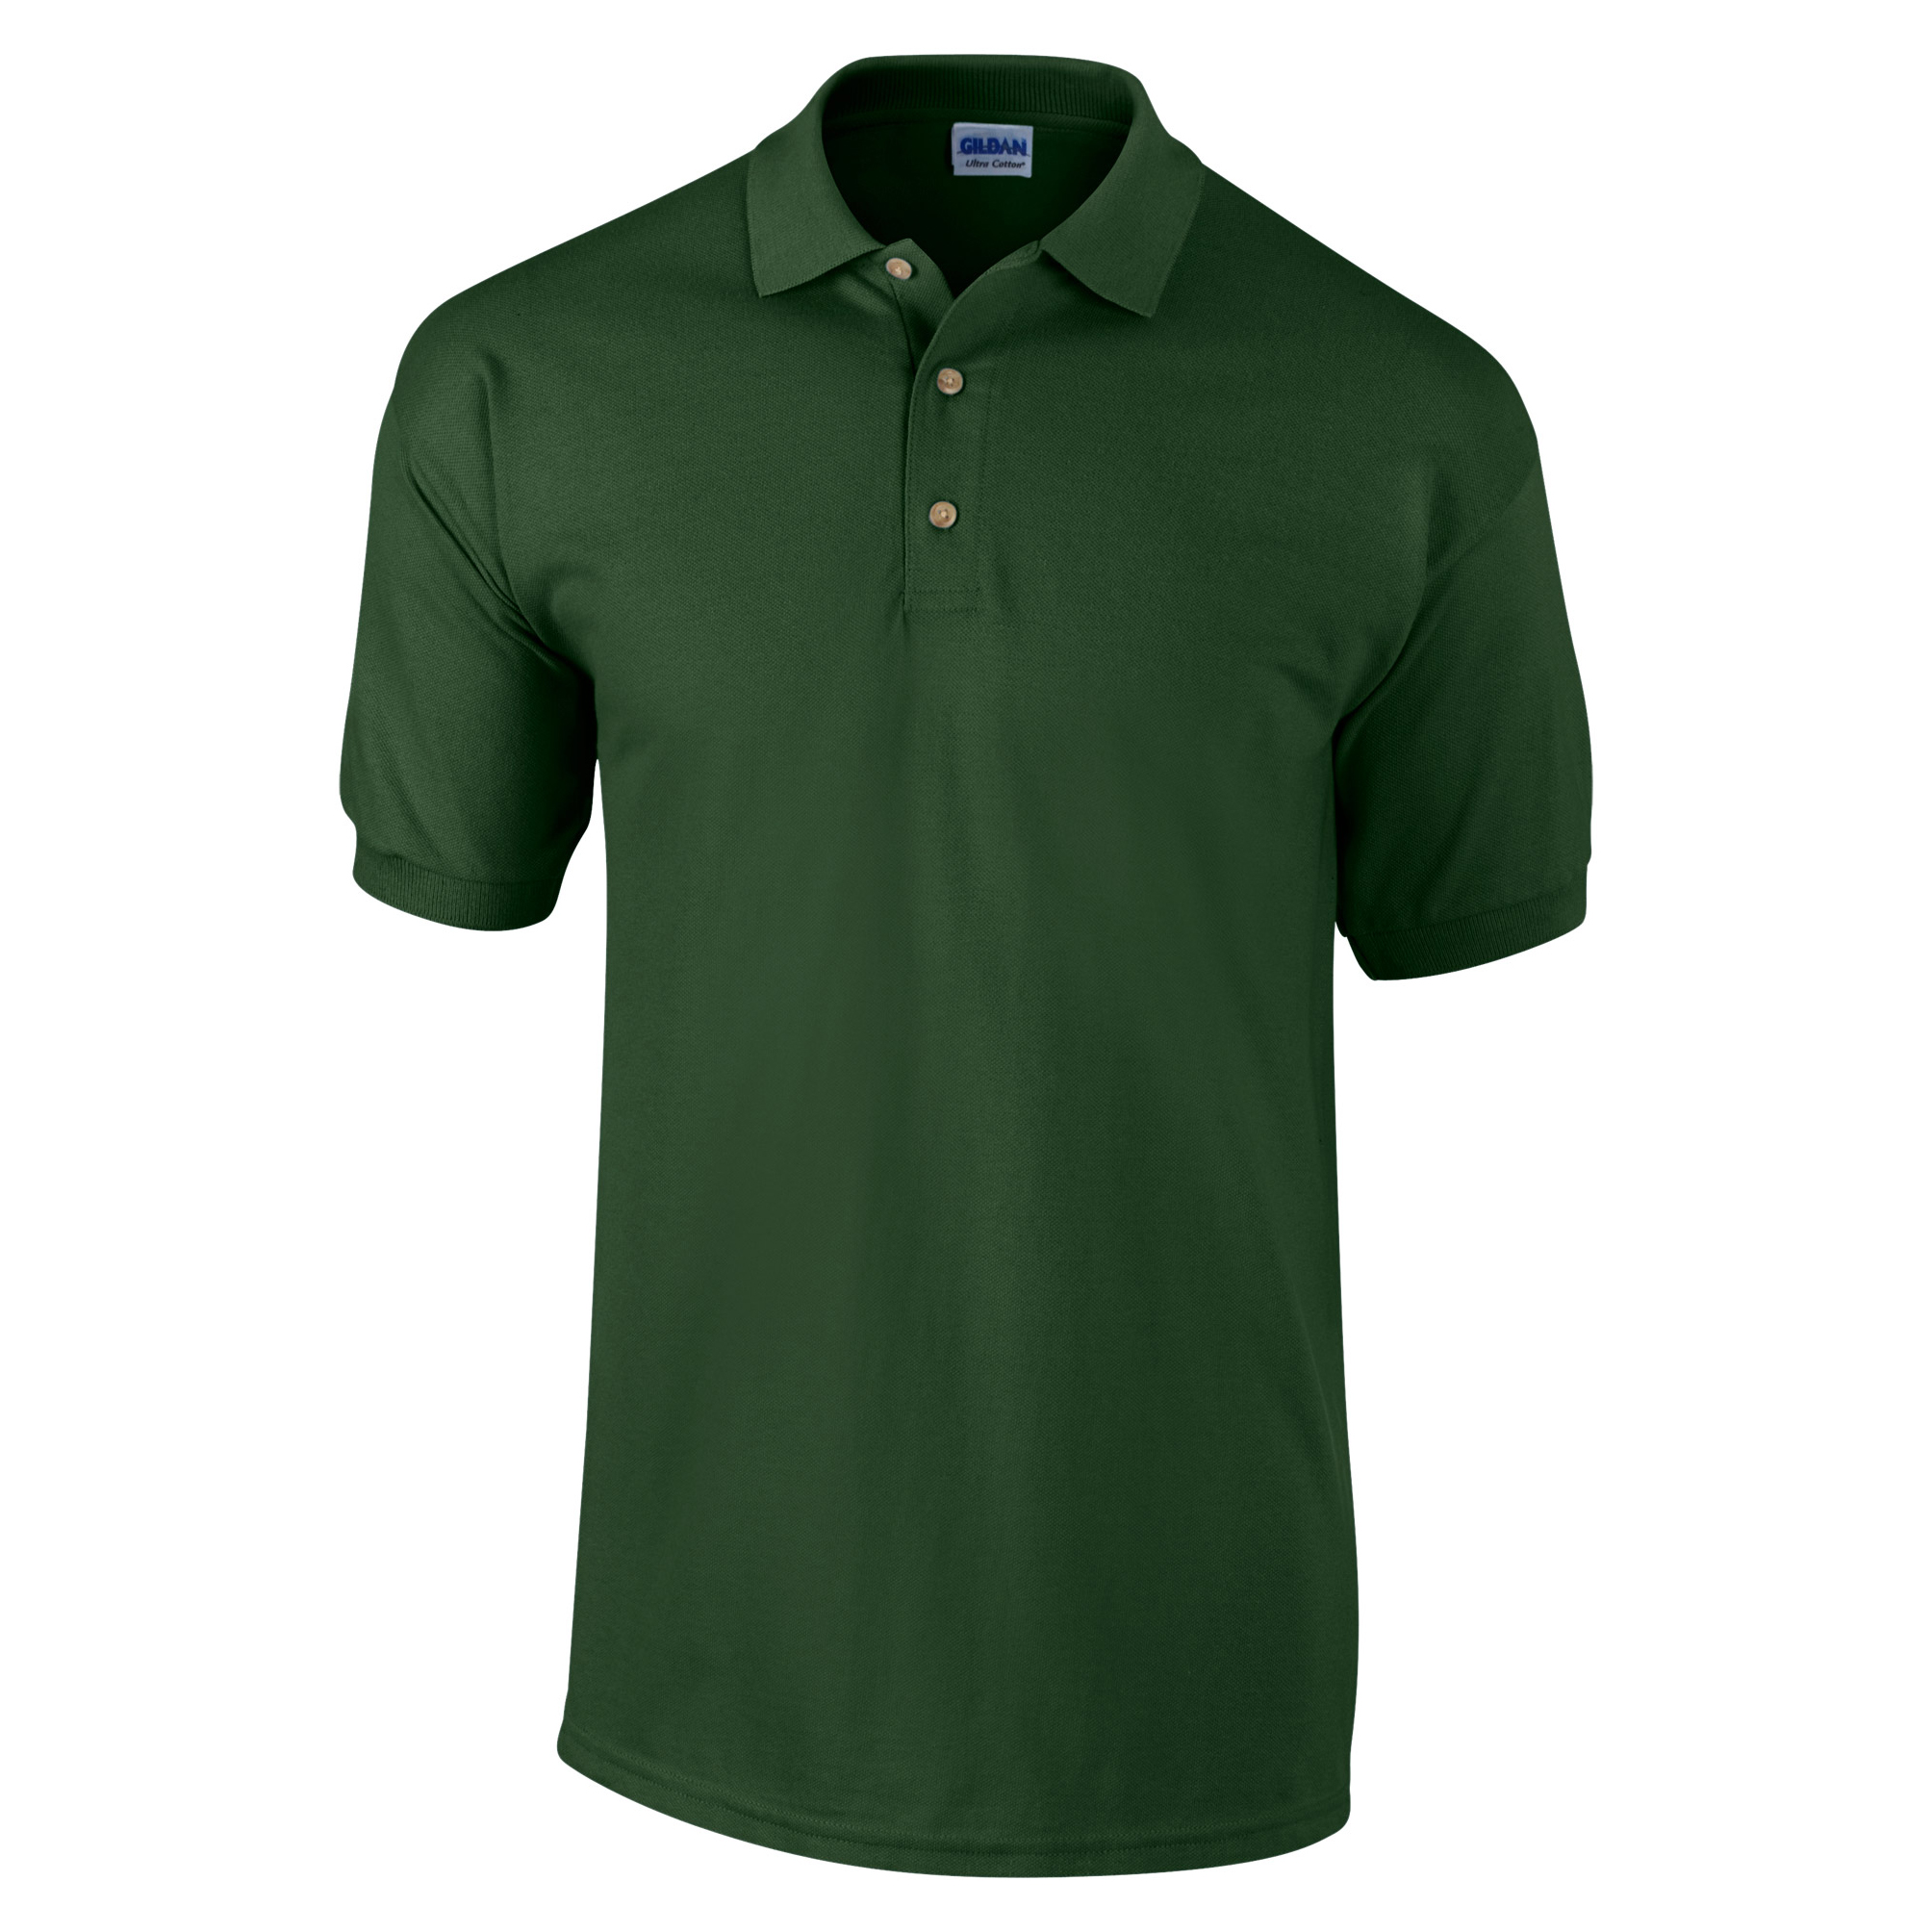 Embroidered Polo Shirts - Personalised Printed Polo Shirts ... 2a139d8ab8